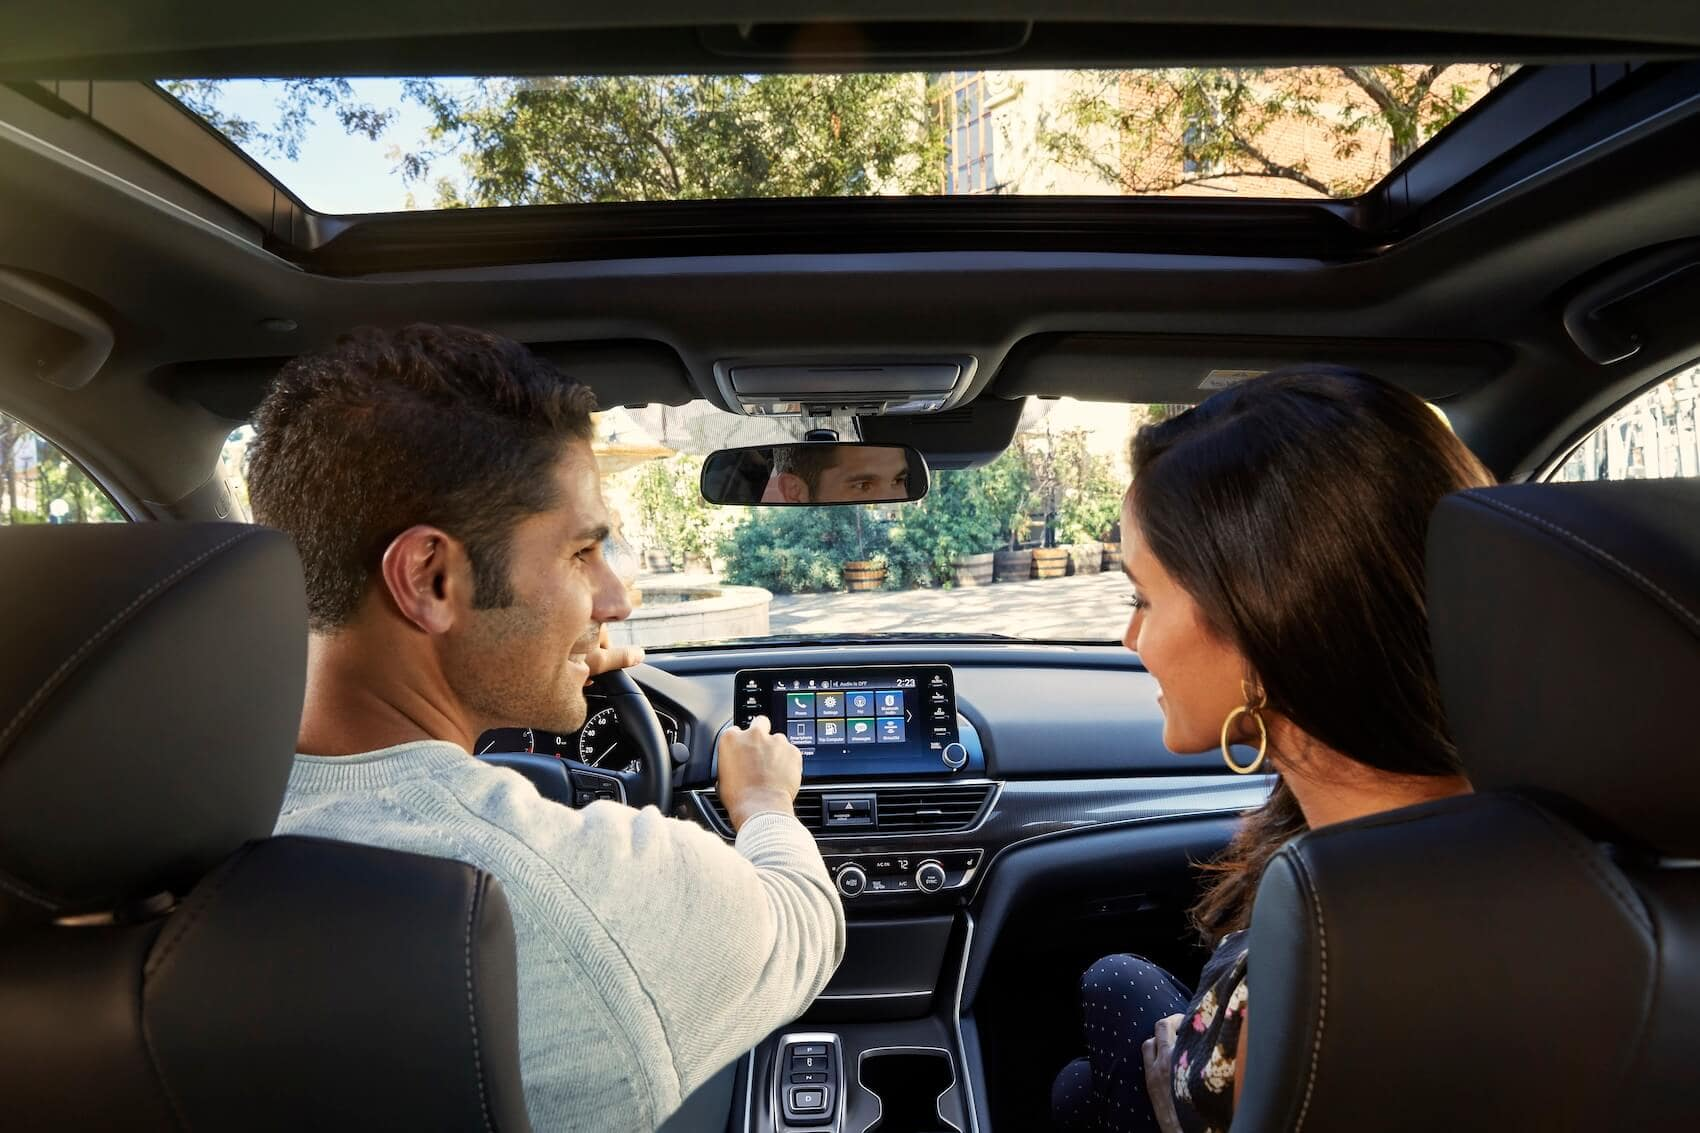 Honda Accord In-Cabin Features & Technology